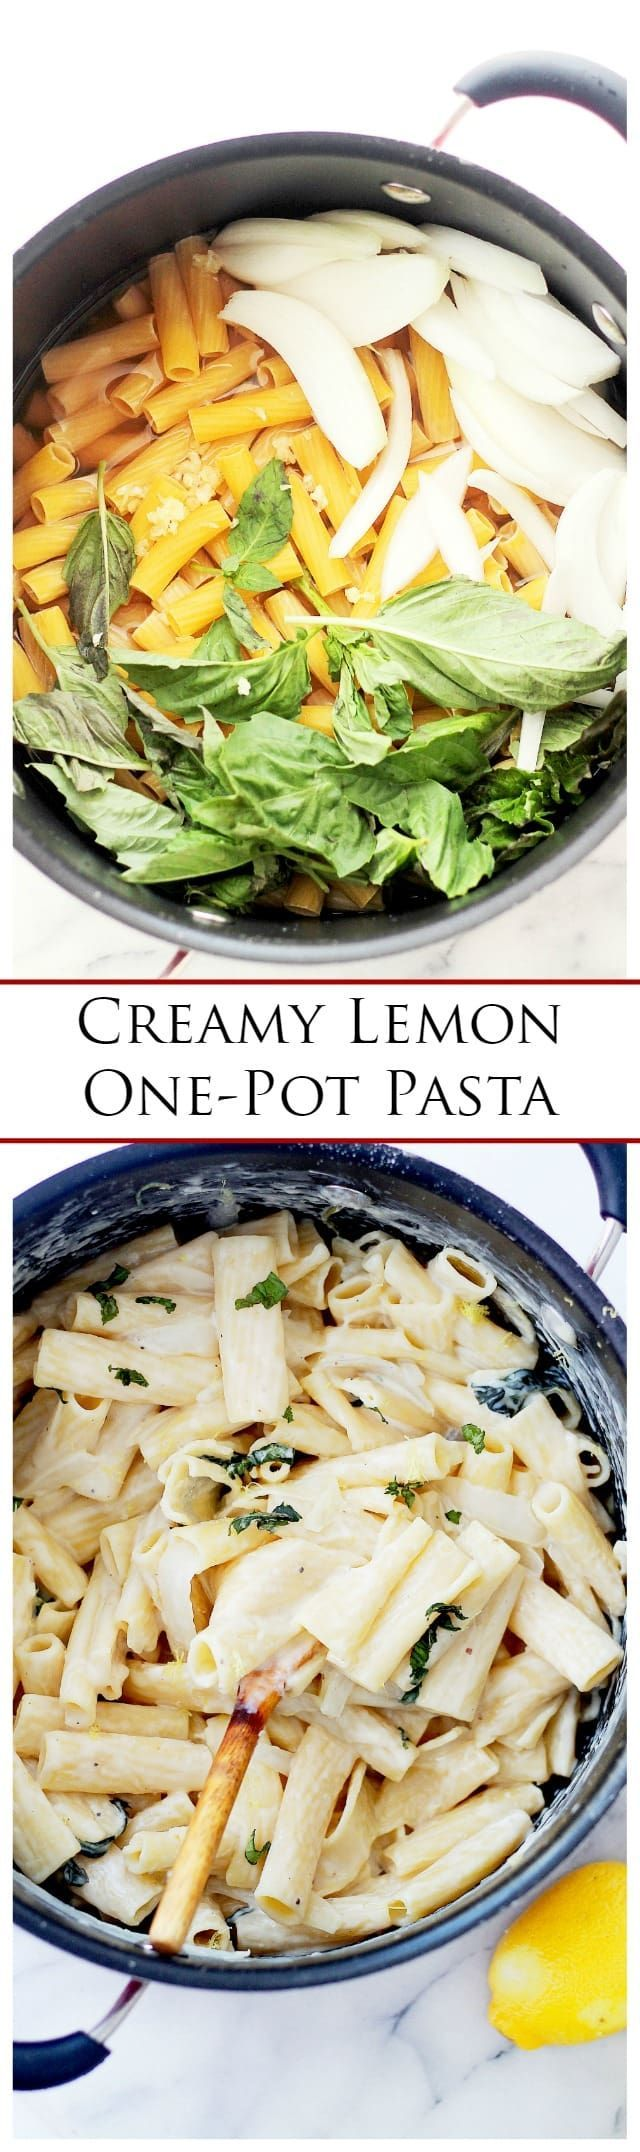 Creamy Lemon One-Pot Pasta | www.diethood.com | The delicious combination of lemon and cream cheese is spot-on for this easy weeknight one-pot pasta dinner.